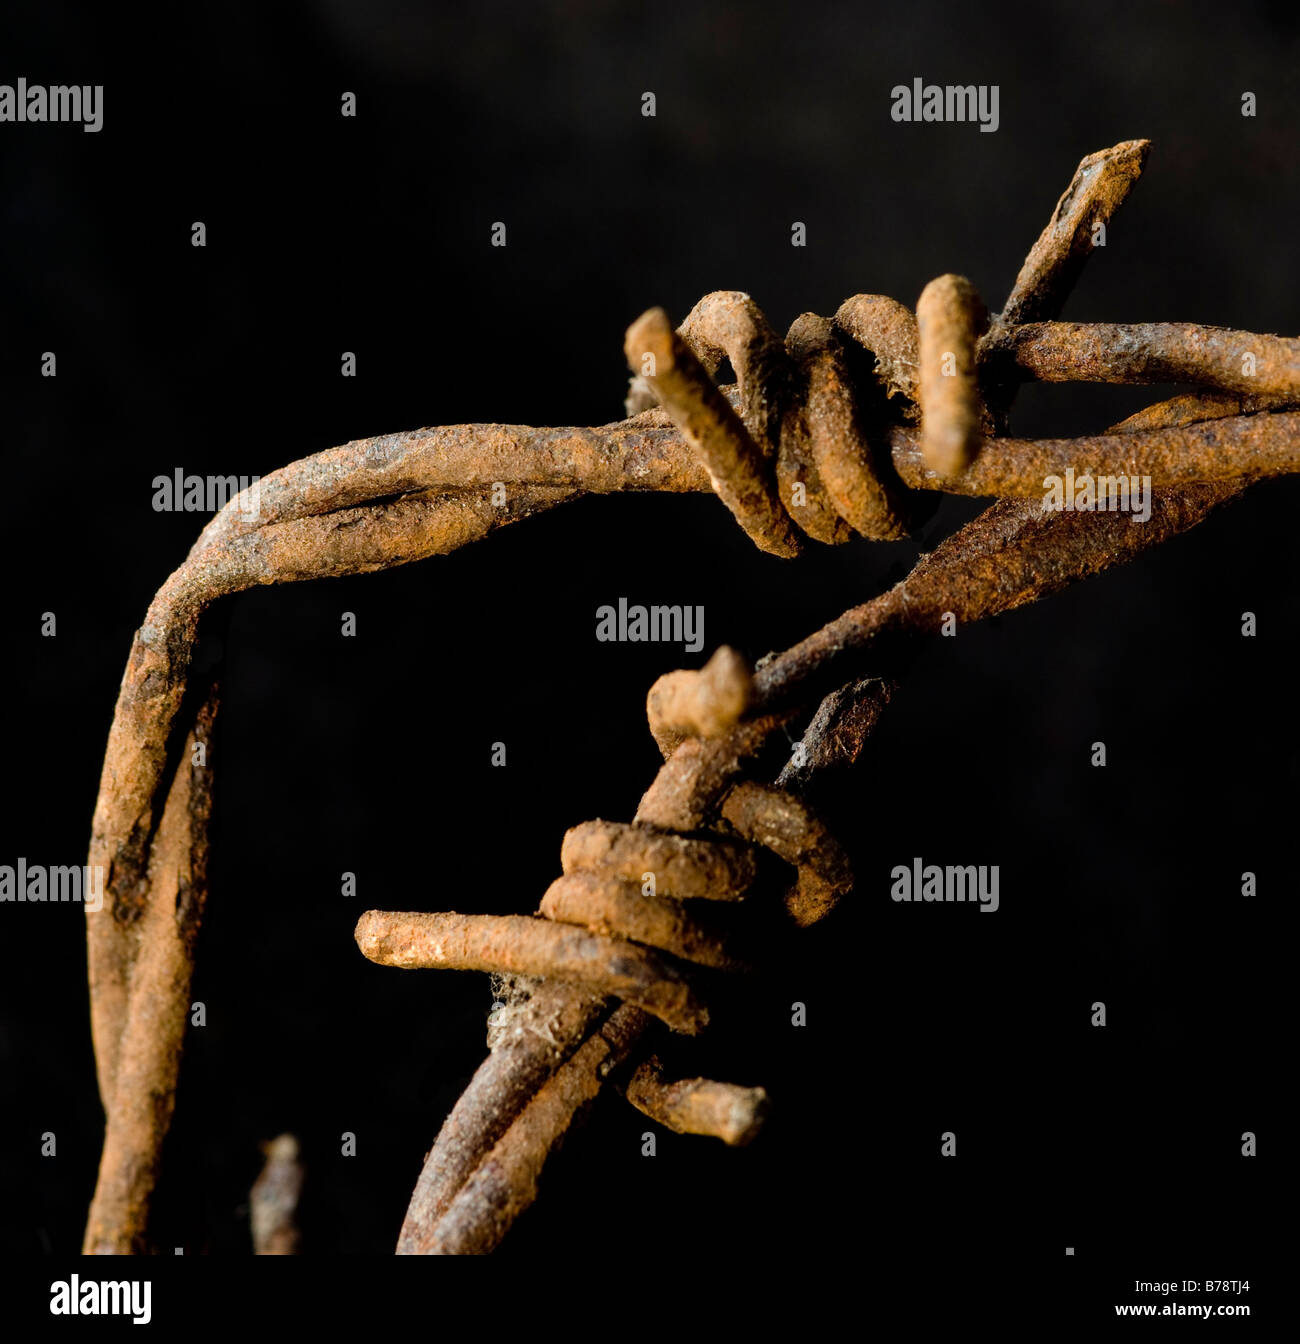 Close up of two sections of twisted, rusty barbed wire - Stock Image